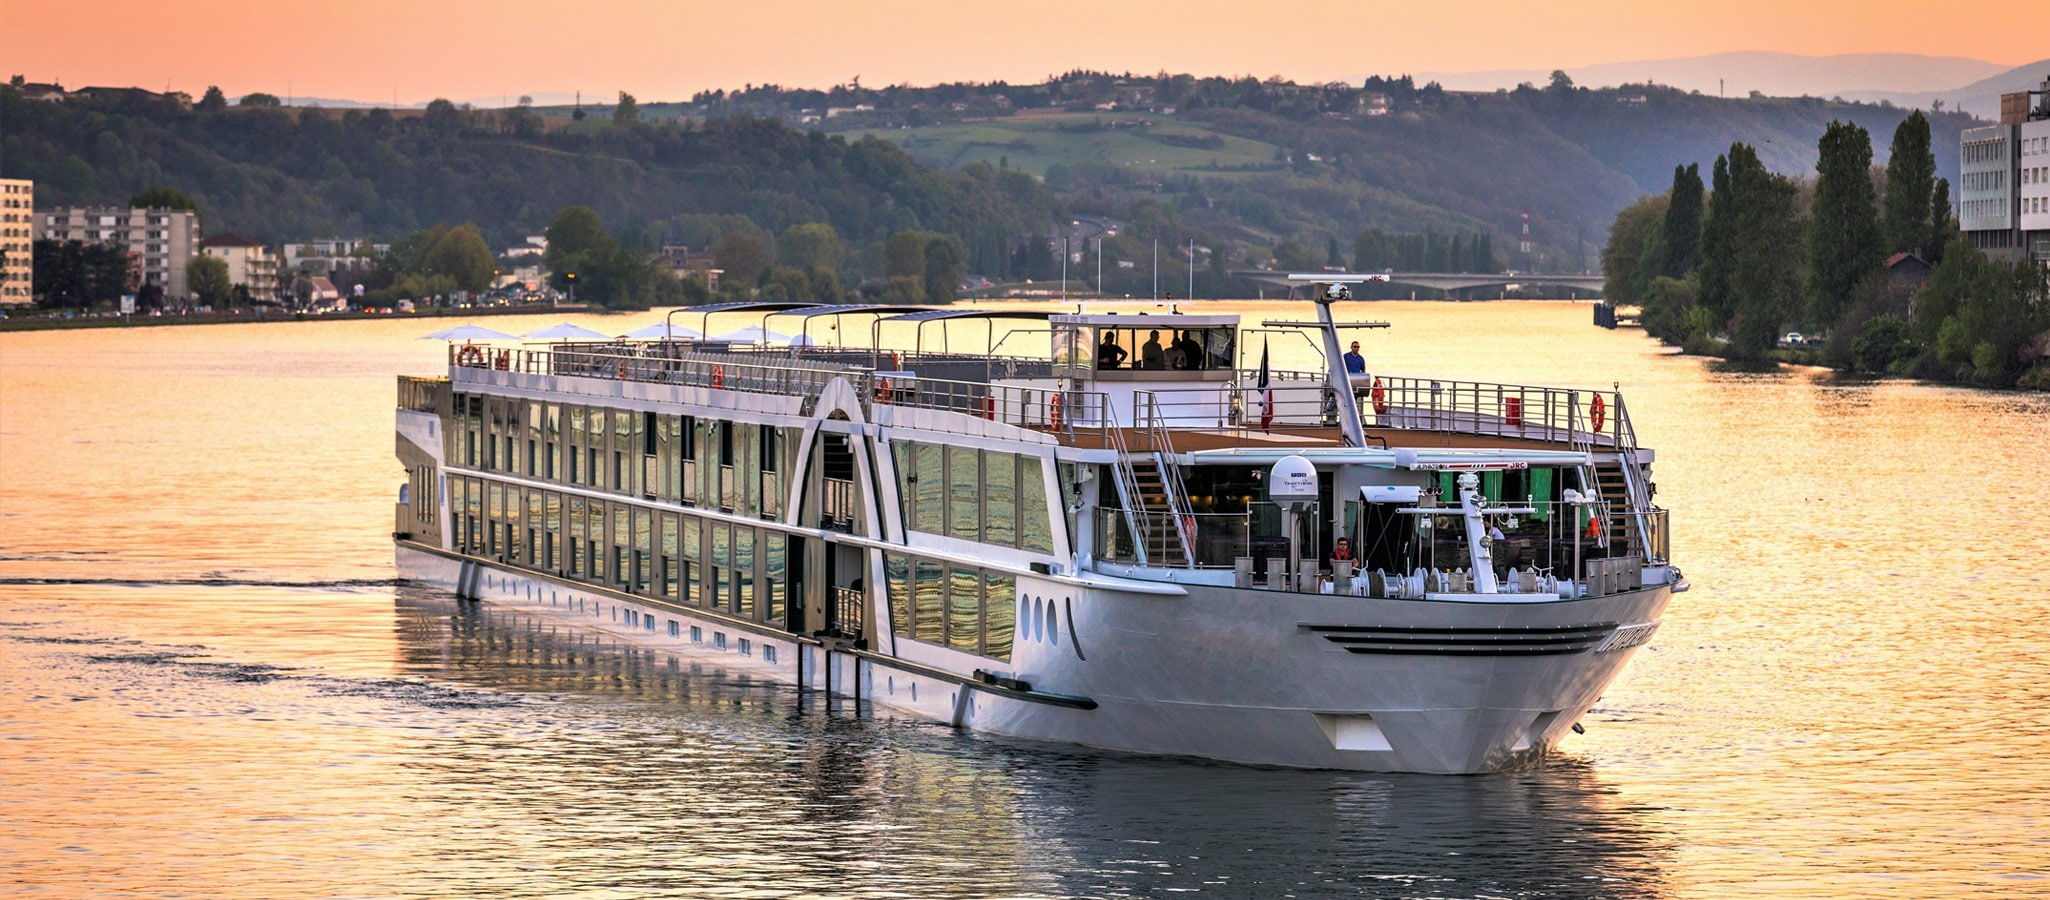 River cruise ships offer plenty of space for meetings, conferences and incentives due their multifunctional decks onboard.